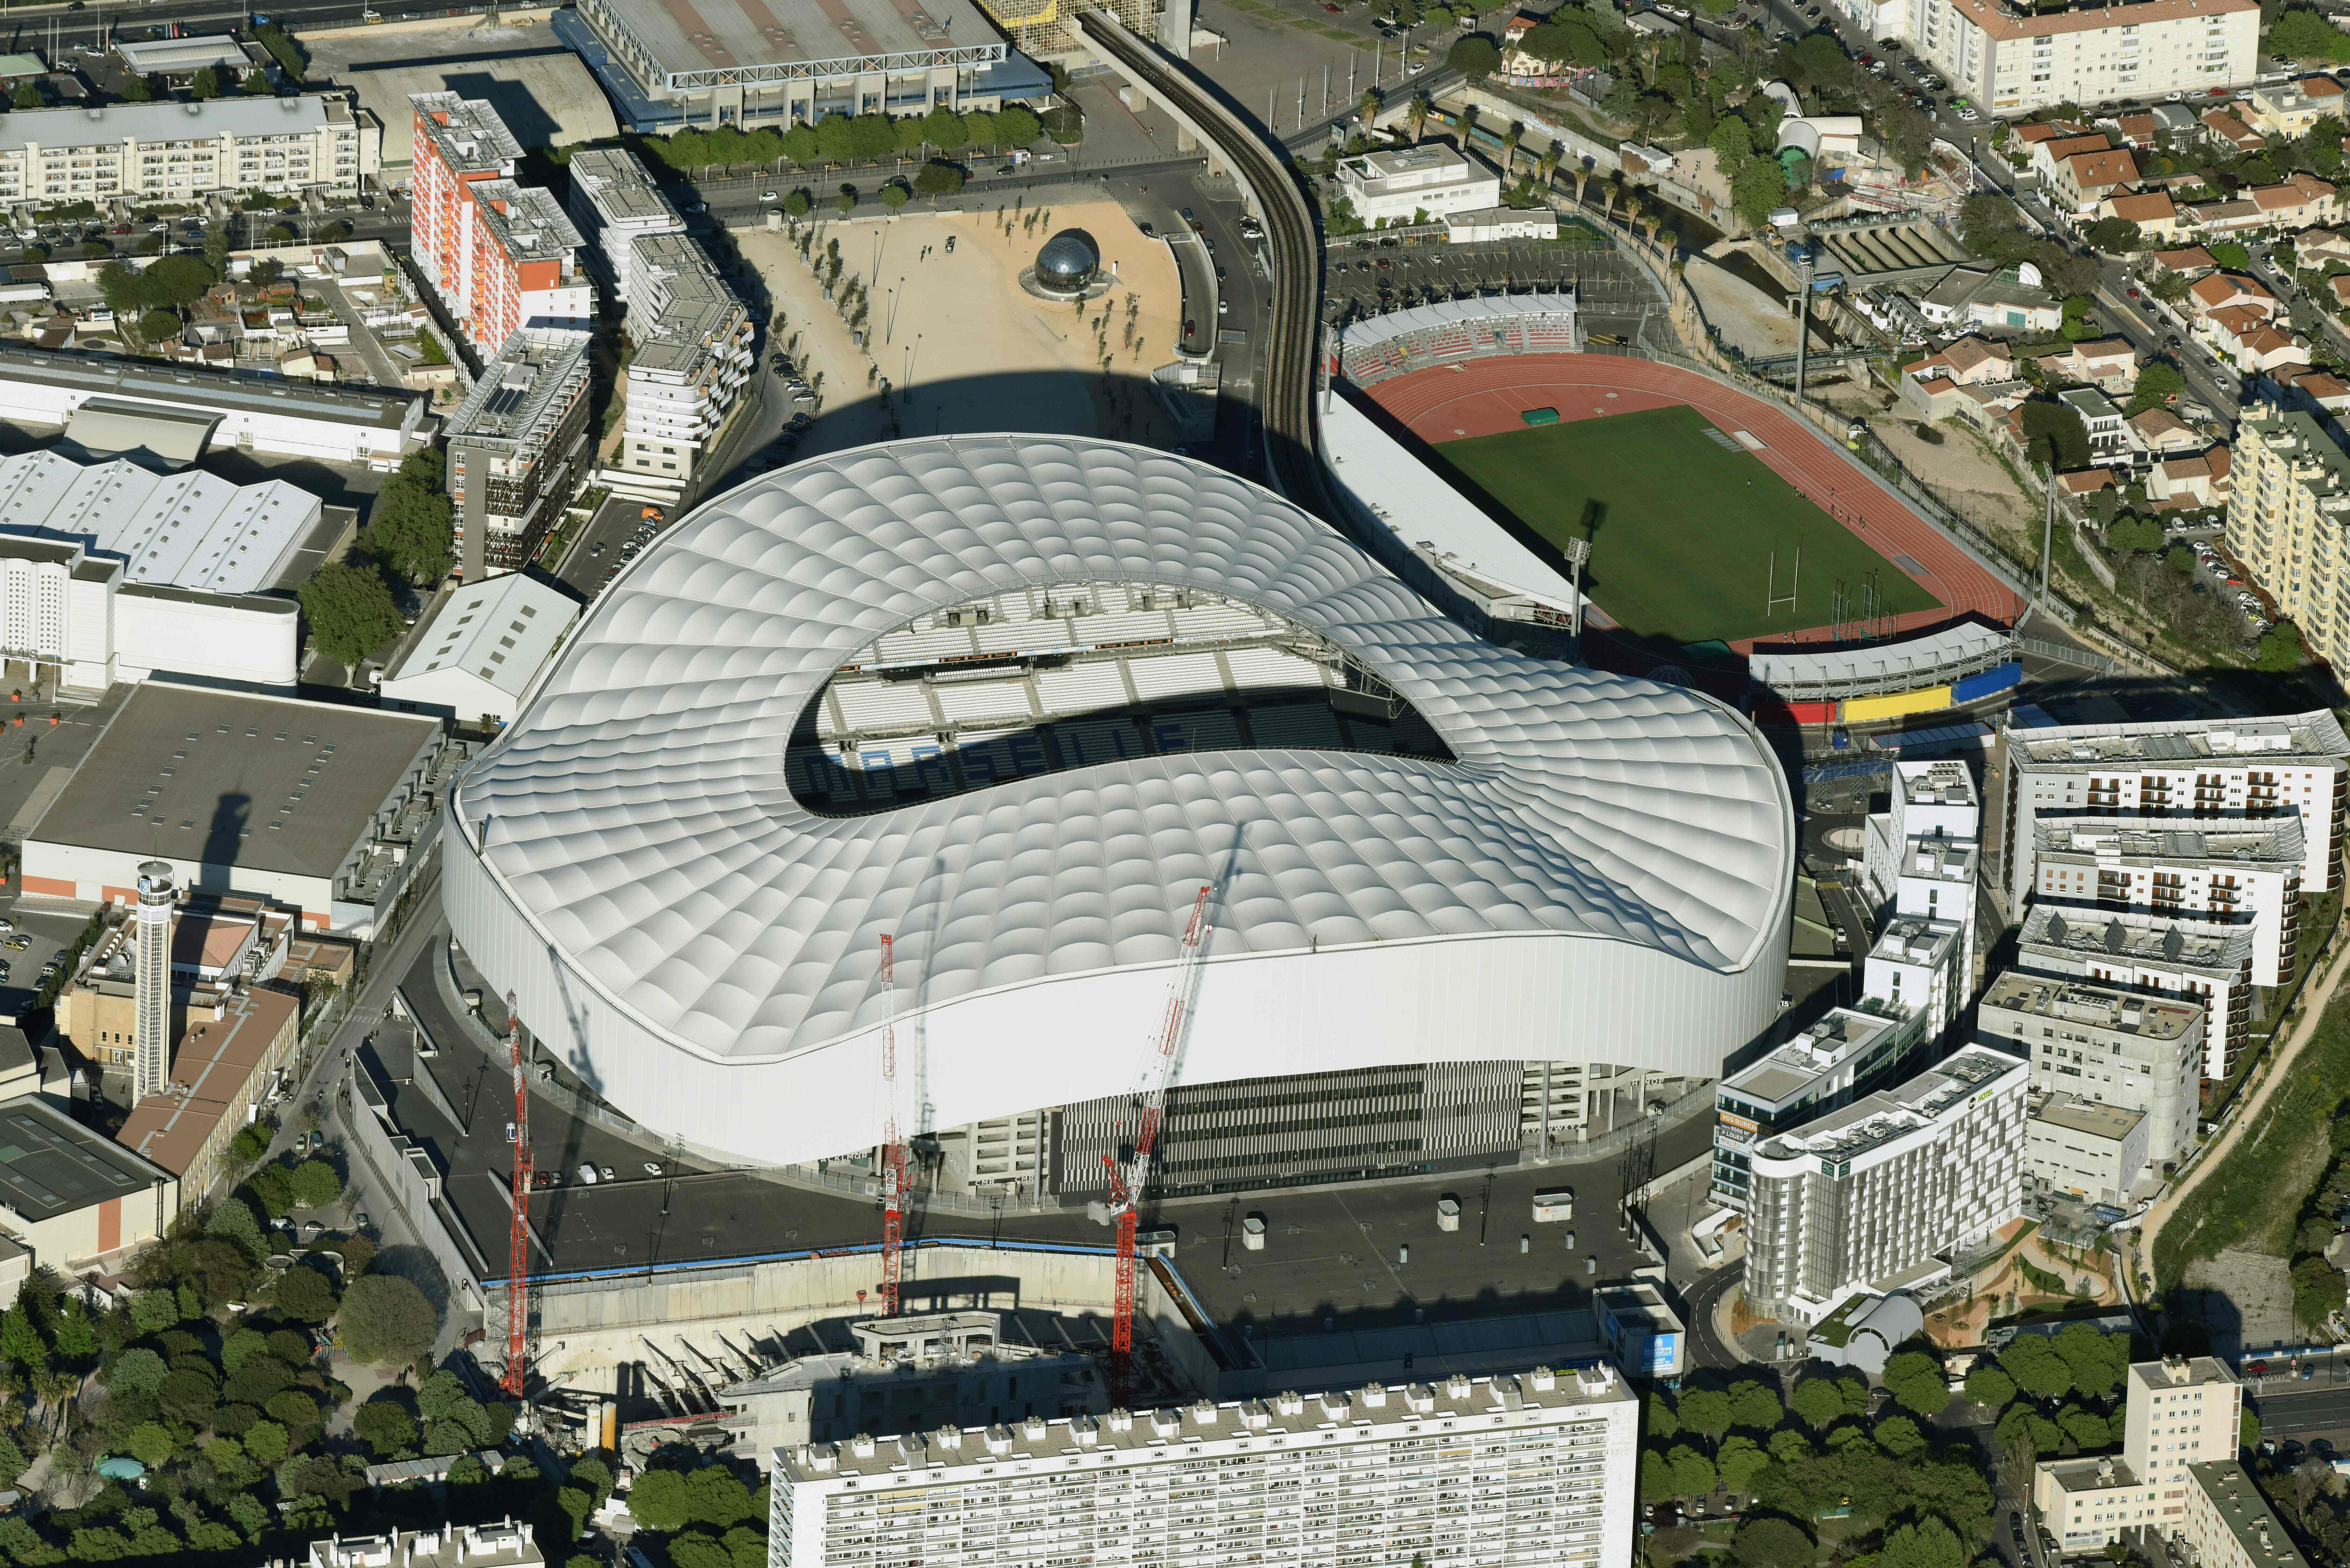 A photo taken on April 20, 2016 shows an aerial view of the Velodrome stadium in Marseille, southeastern France. / AFP / EUROLUFTBILD / Robert Grahn        (Photo credit should read )